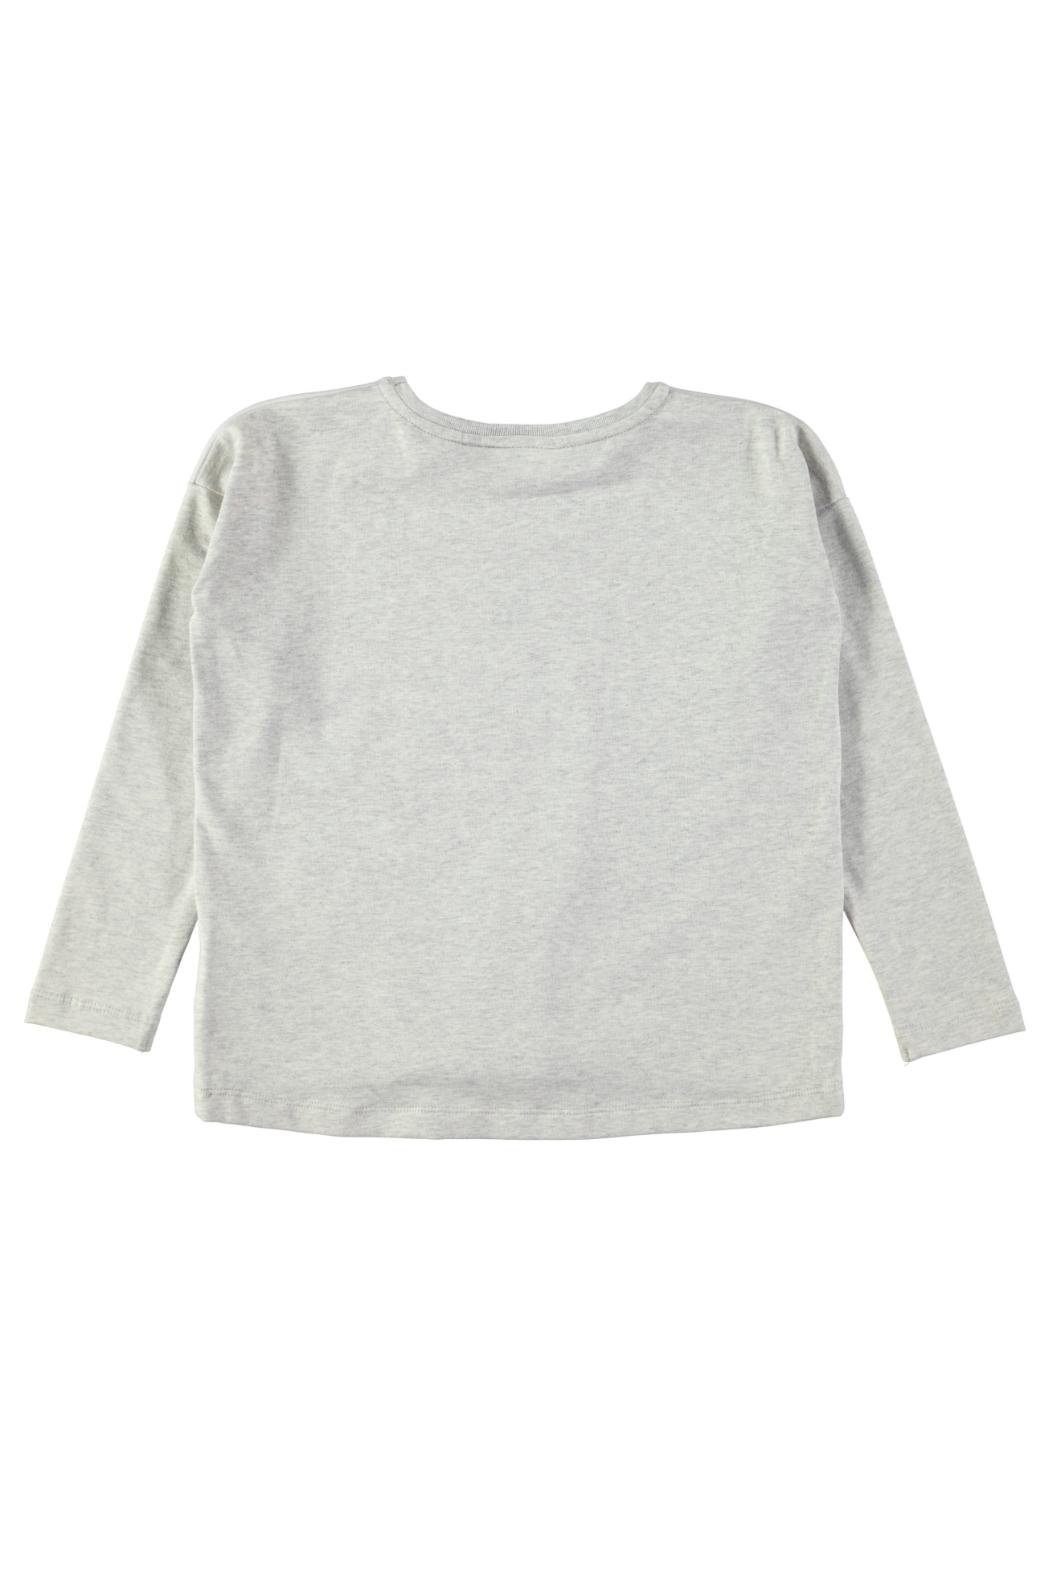 Molo Polar Bear Sweatshirt - Front Full Image